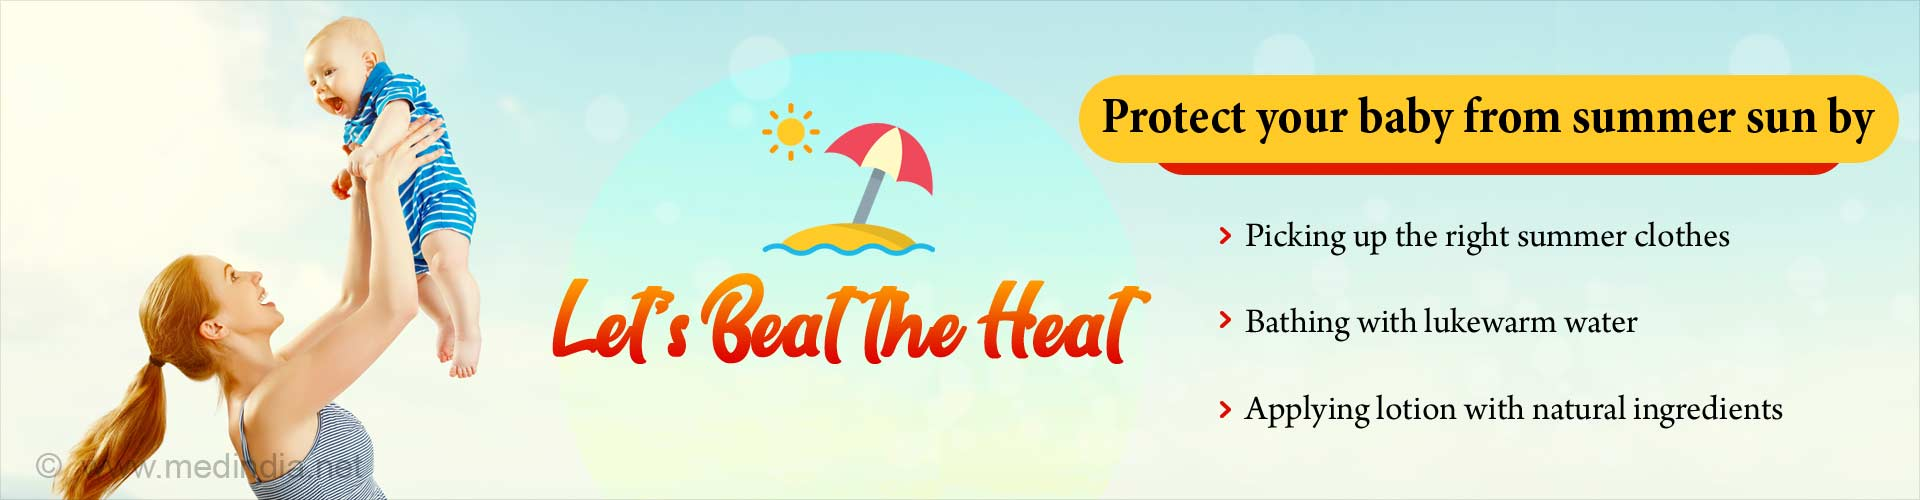 Let's beat the heat. Protect your baby from summer sun by picking up the right summer clothes, bathing with lukewarm water and applying lotion with natural ingredients.